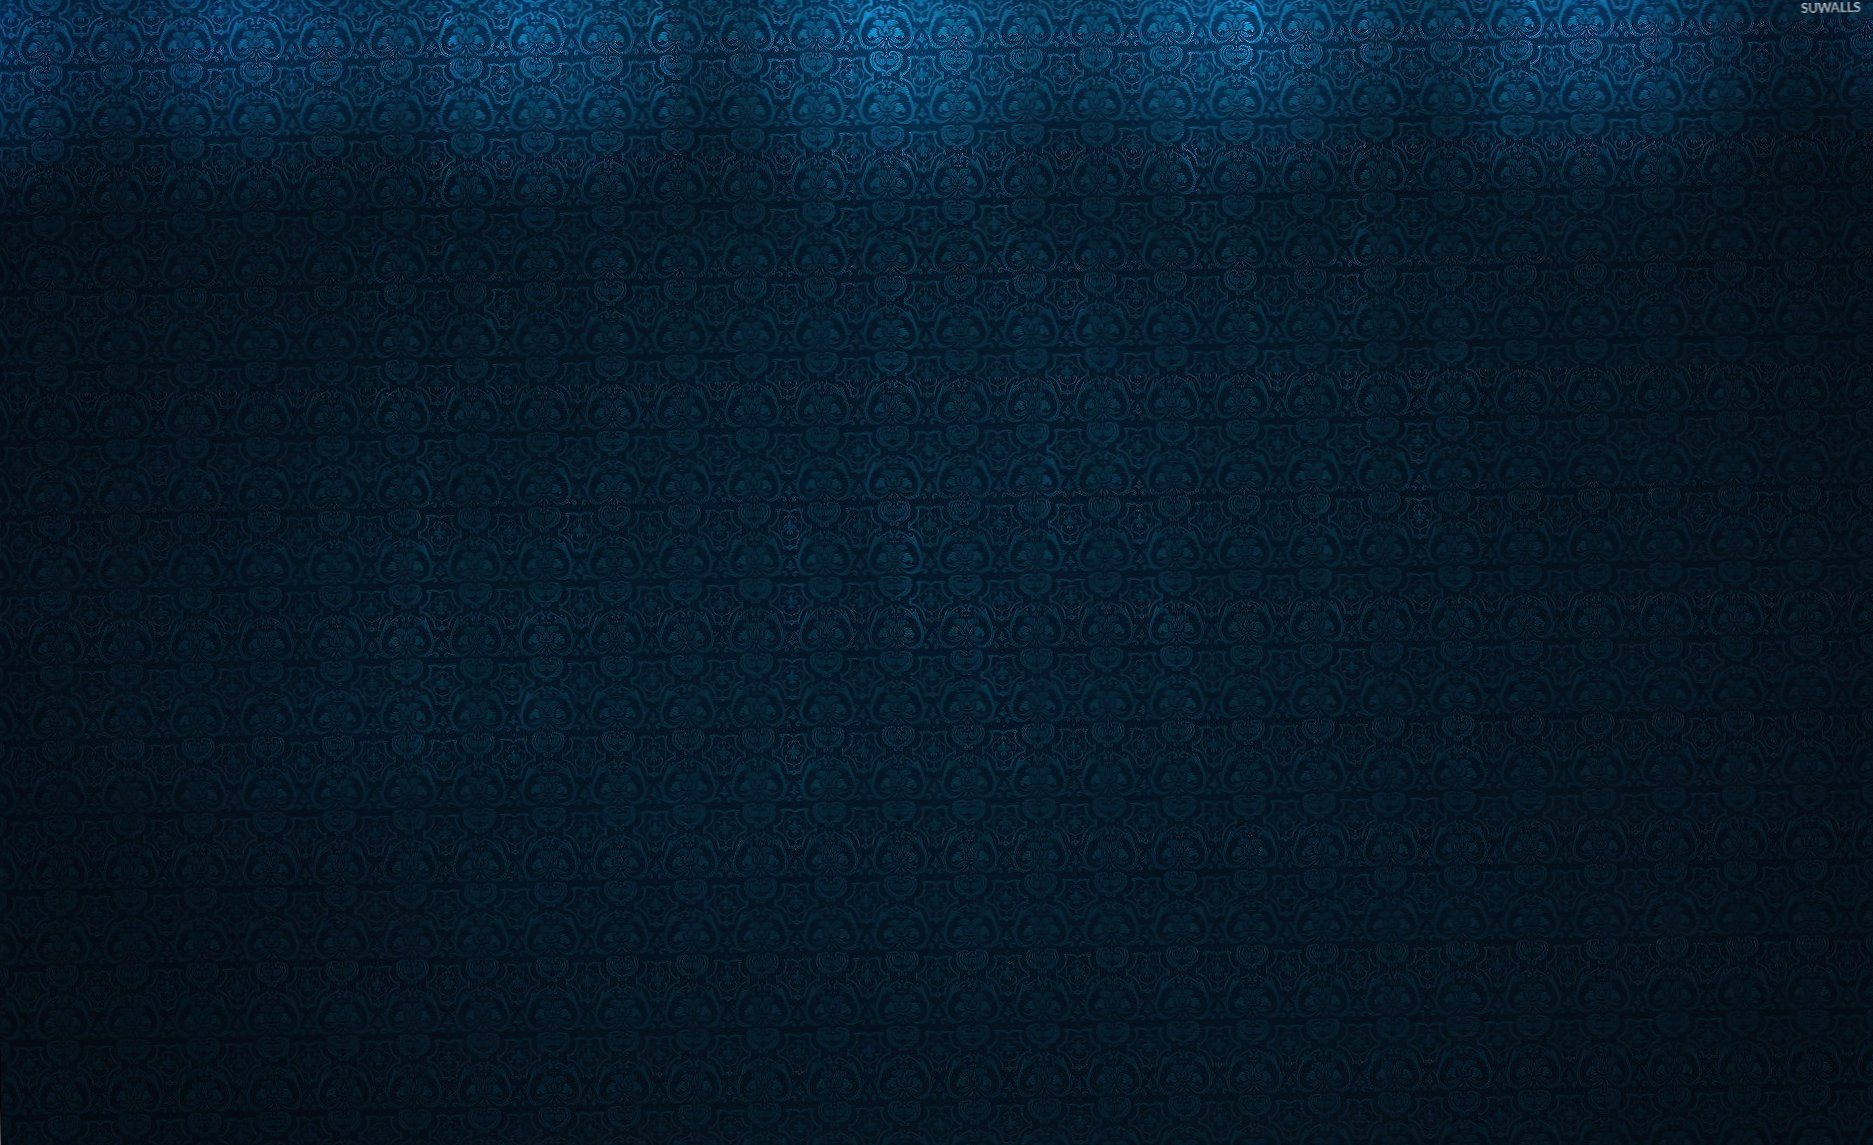 Lights on the blue pattern wall wallpapers HD quality